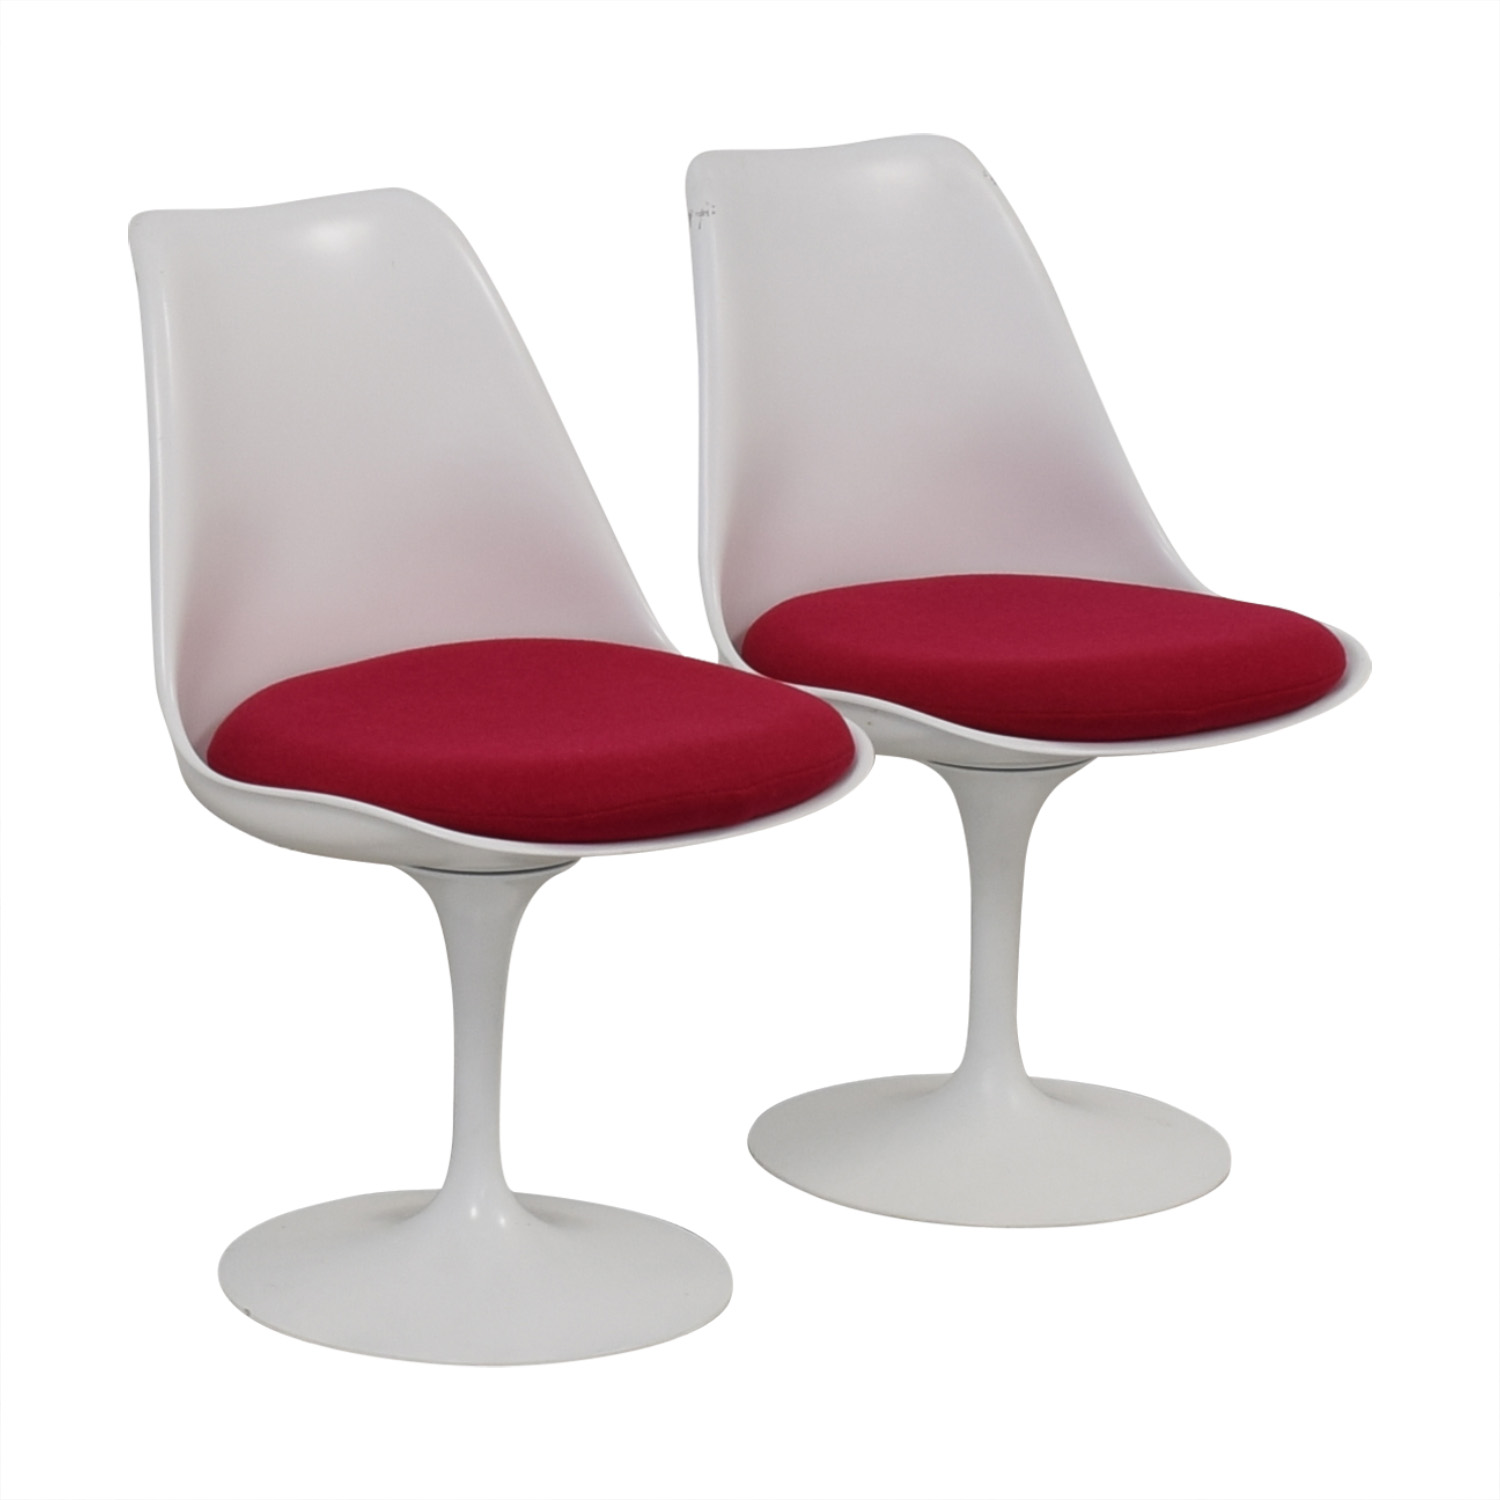 buy Organic Modernism Es Side Chairs Organic Modernism Chairs